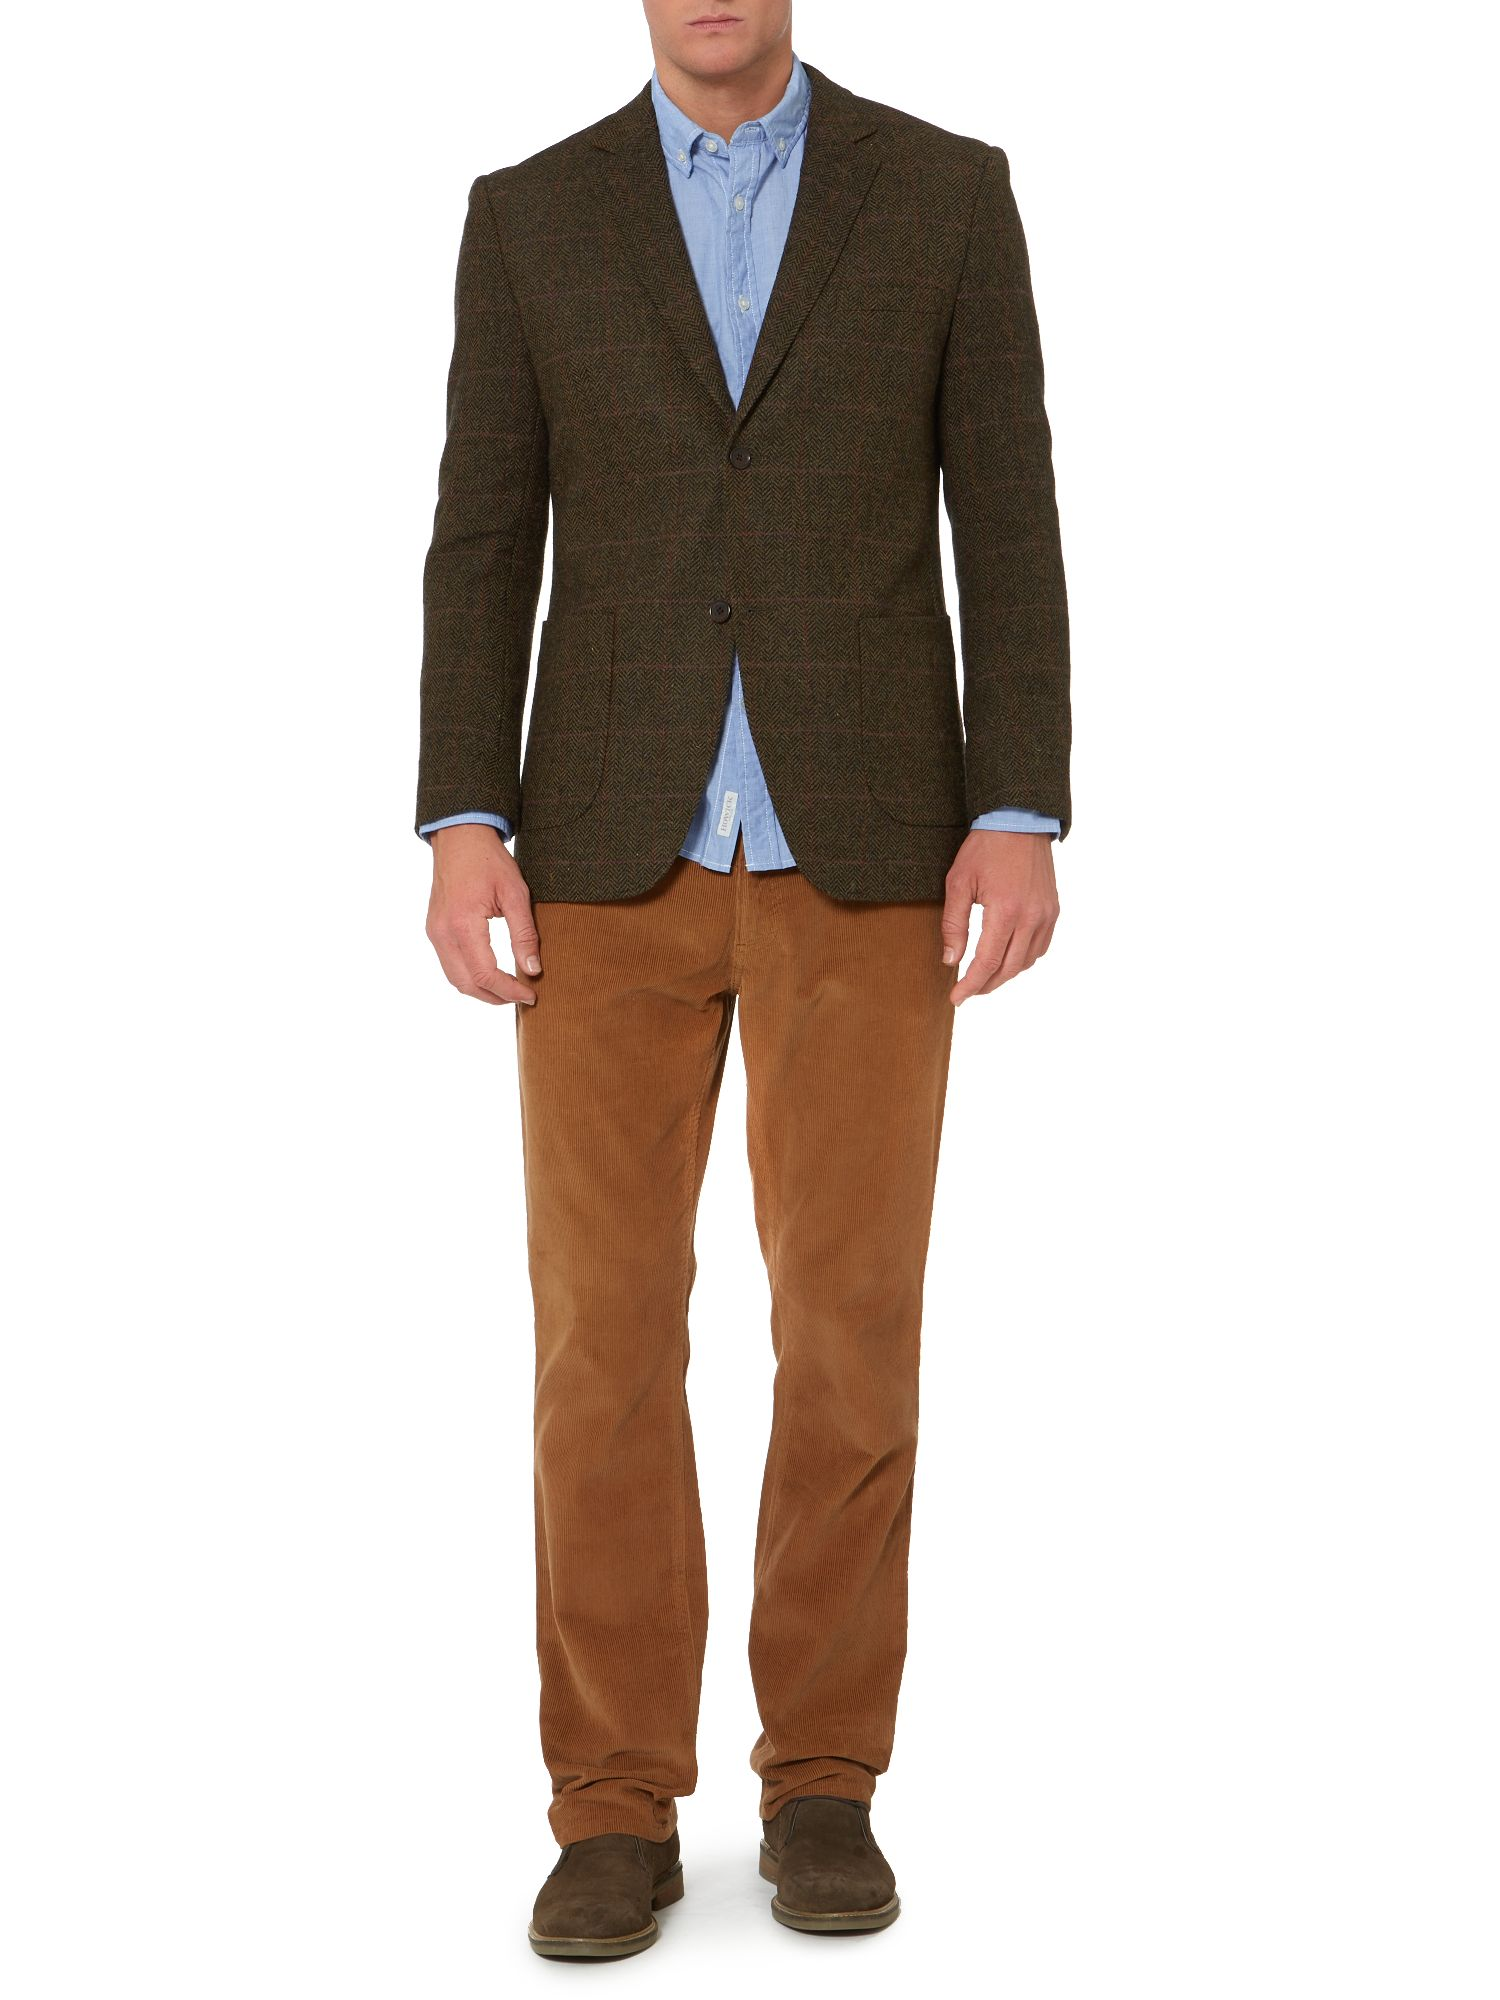 claremont herringbone over check blazer